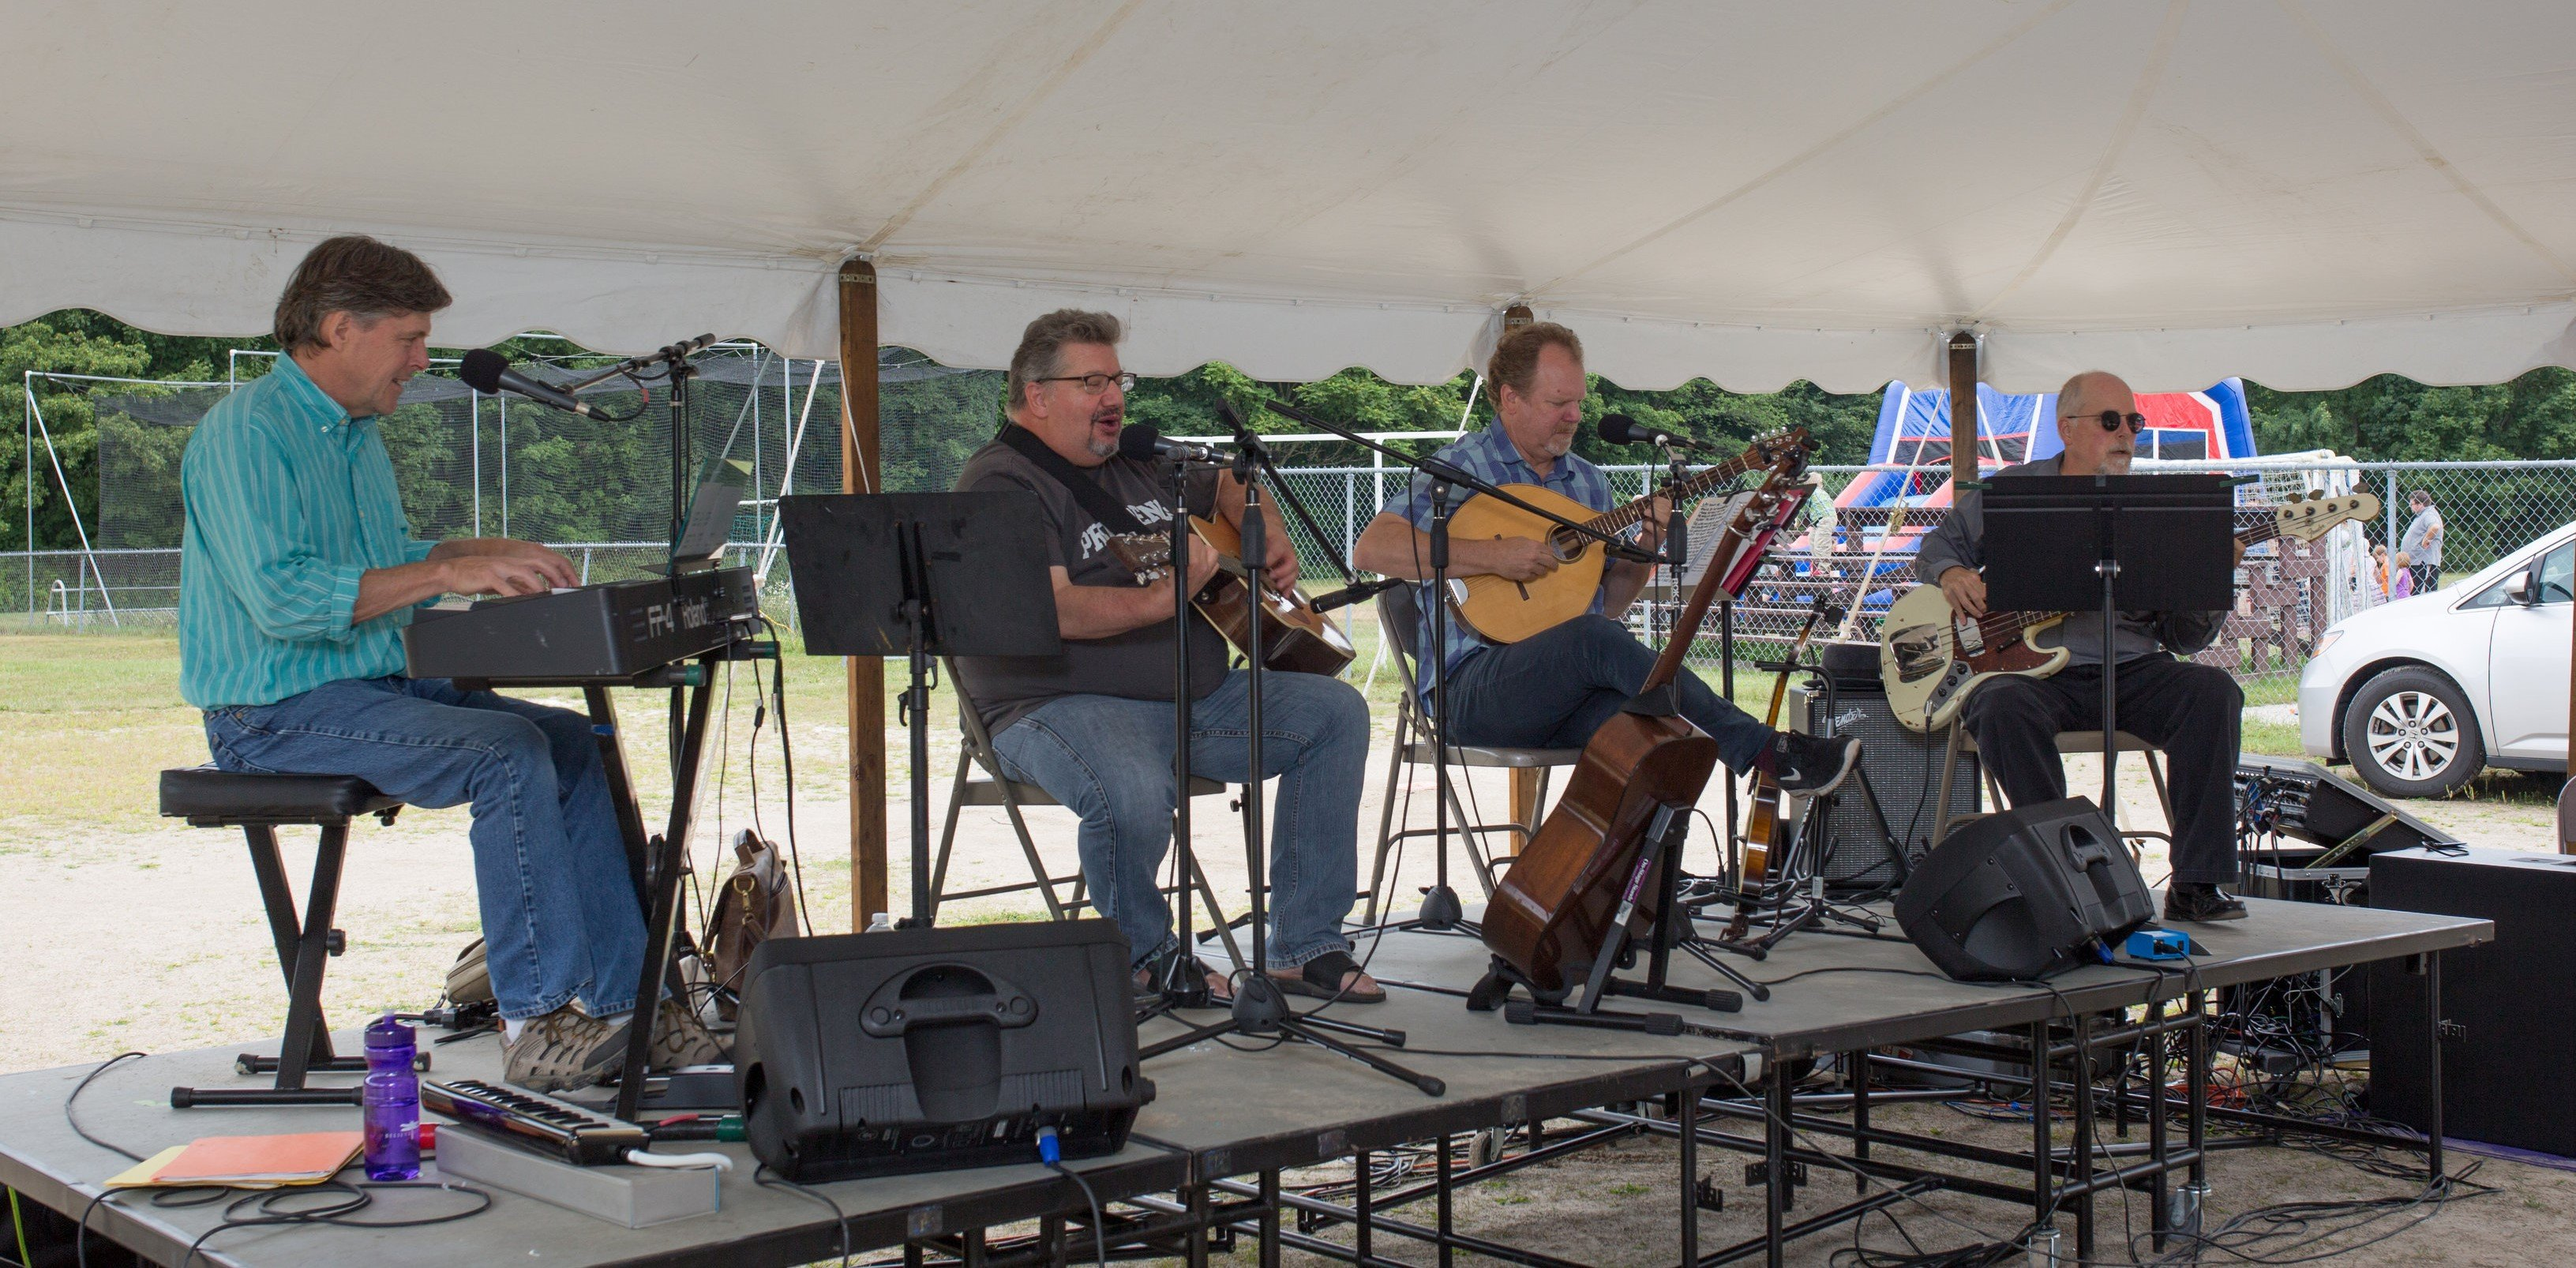 Magic 8 Ball - Americana music, performing at the 2017 Gray Blueberry Festival